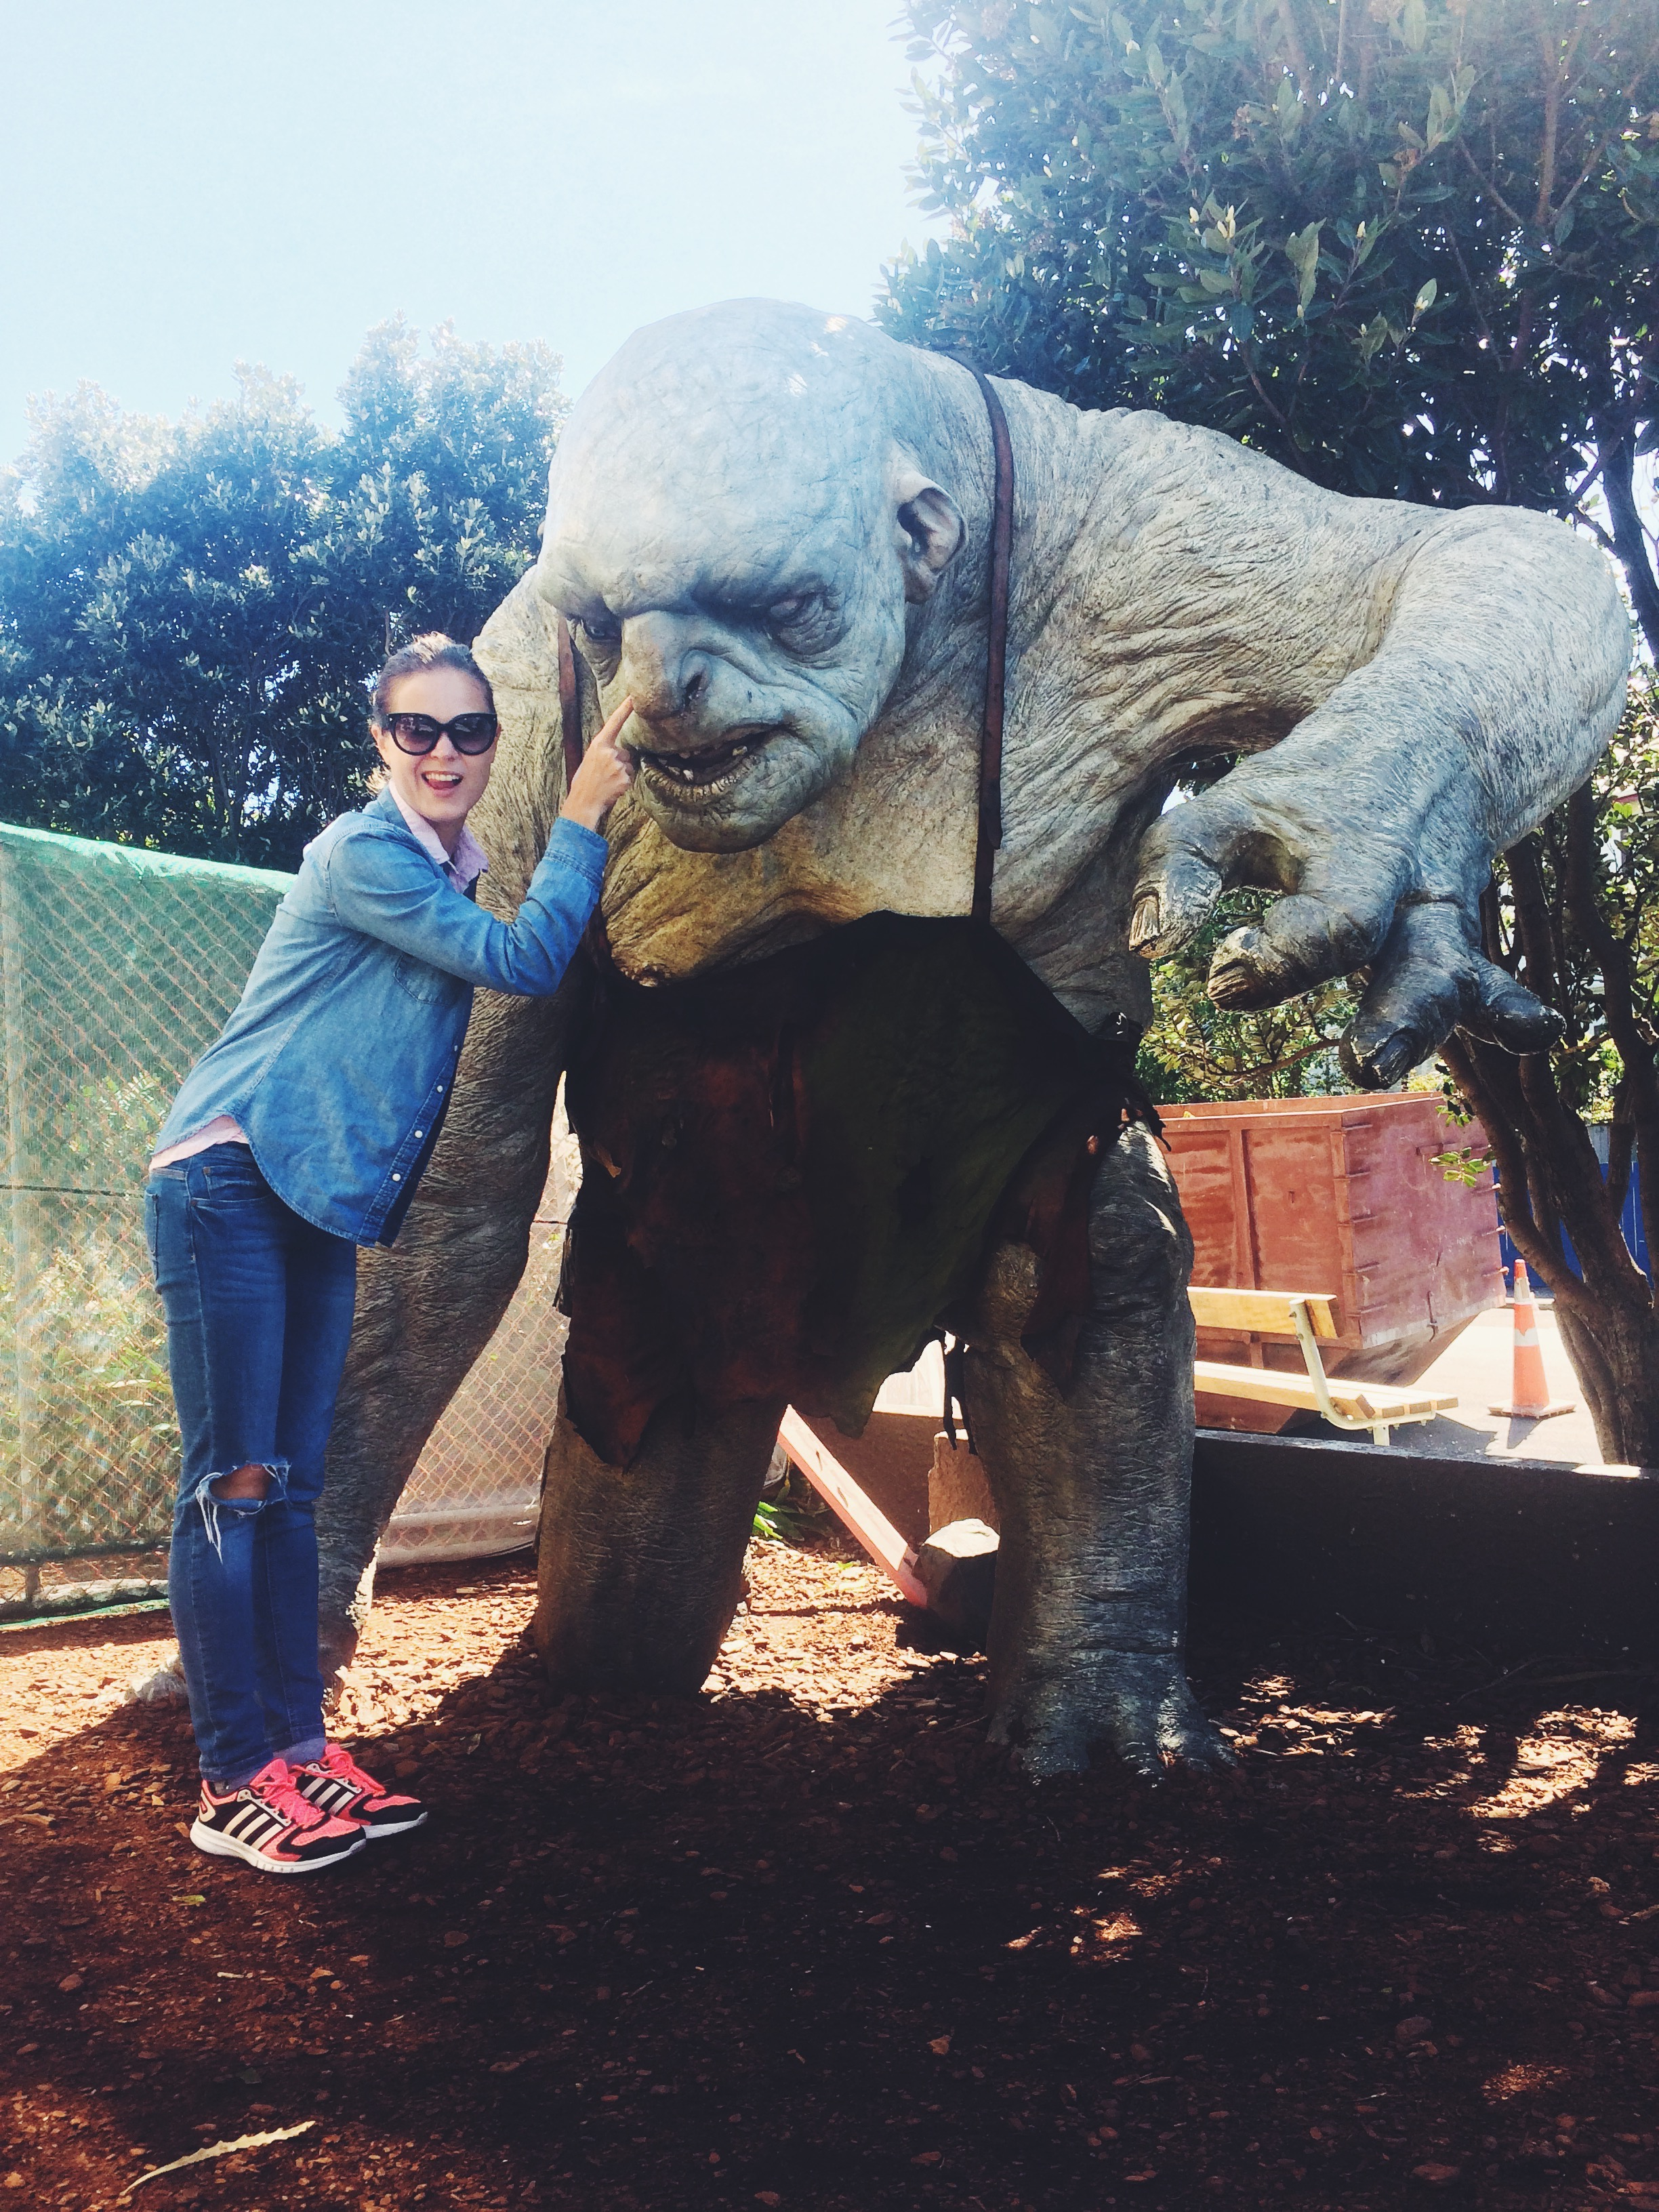 Wellcome to Weta Cave!